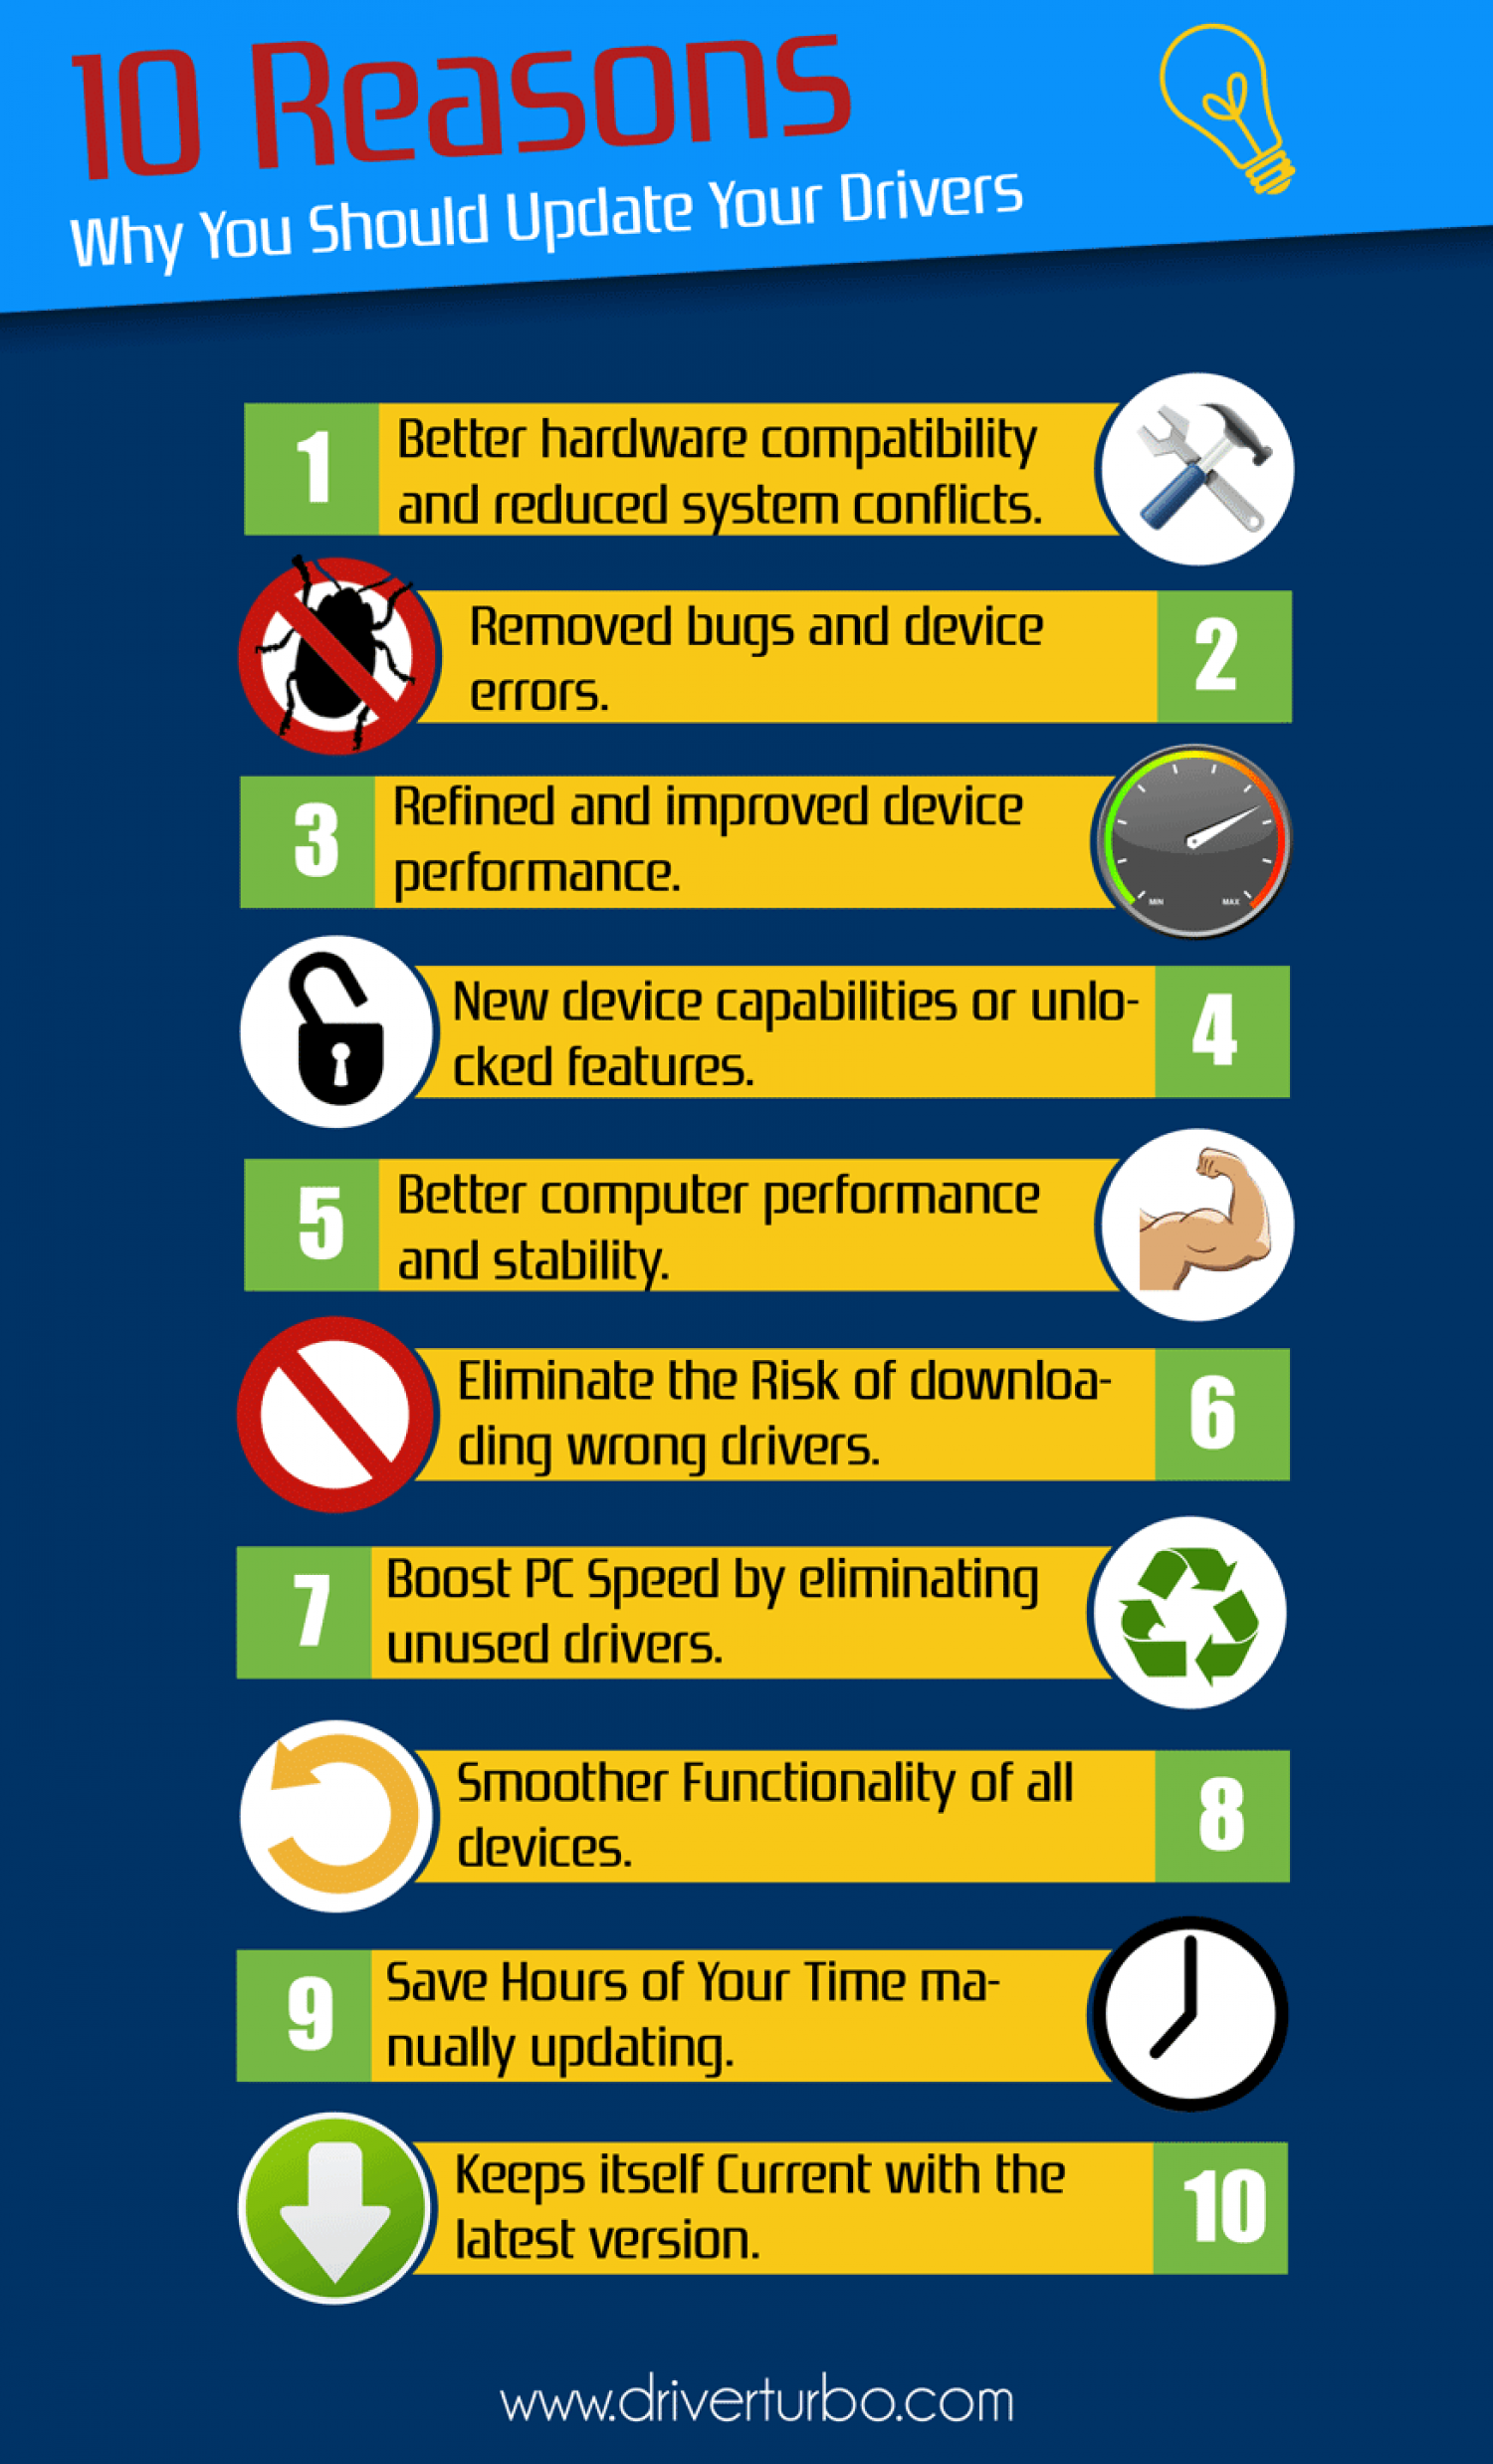 Why You Should Update Your Drivers Infographic